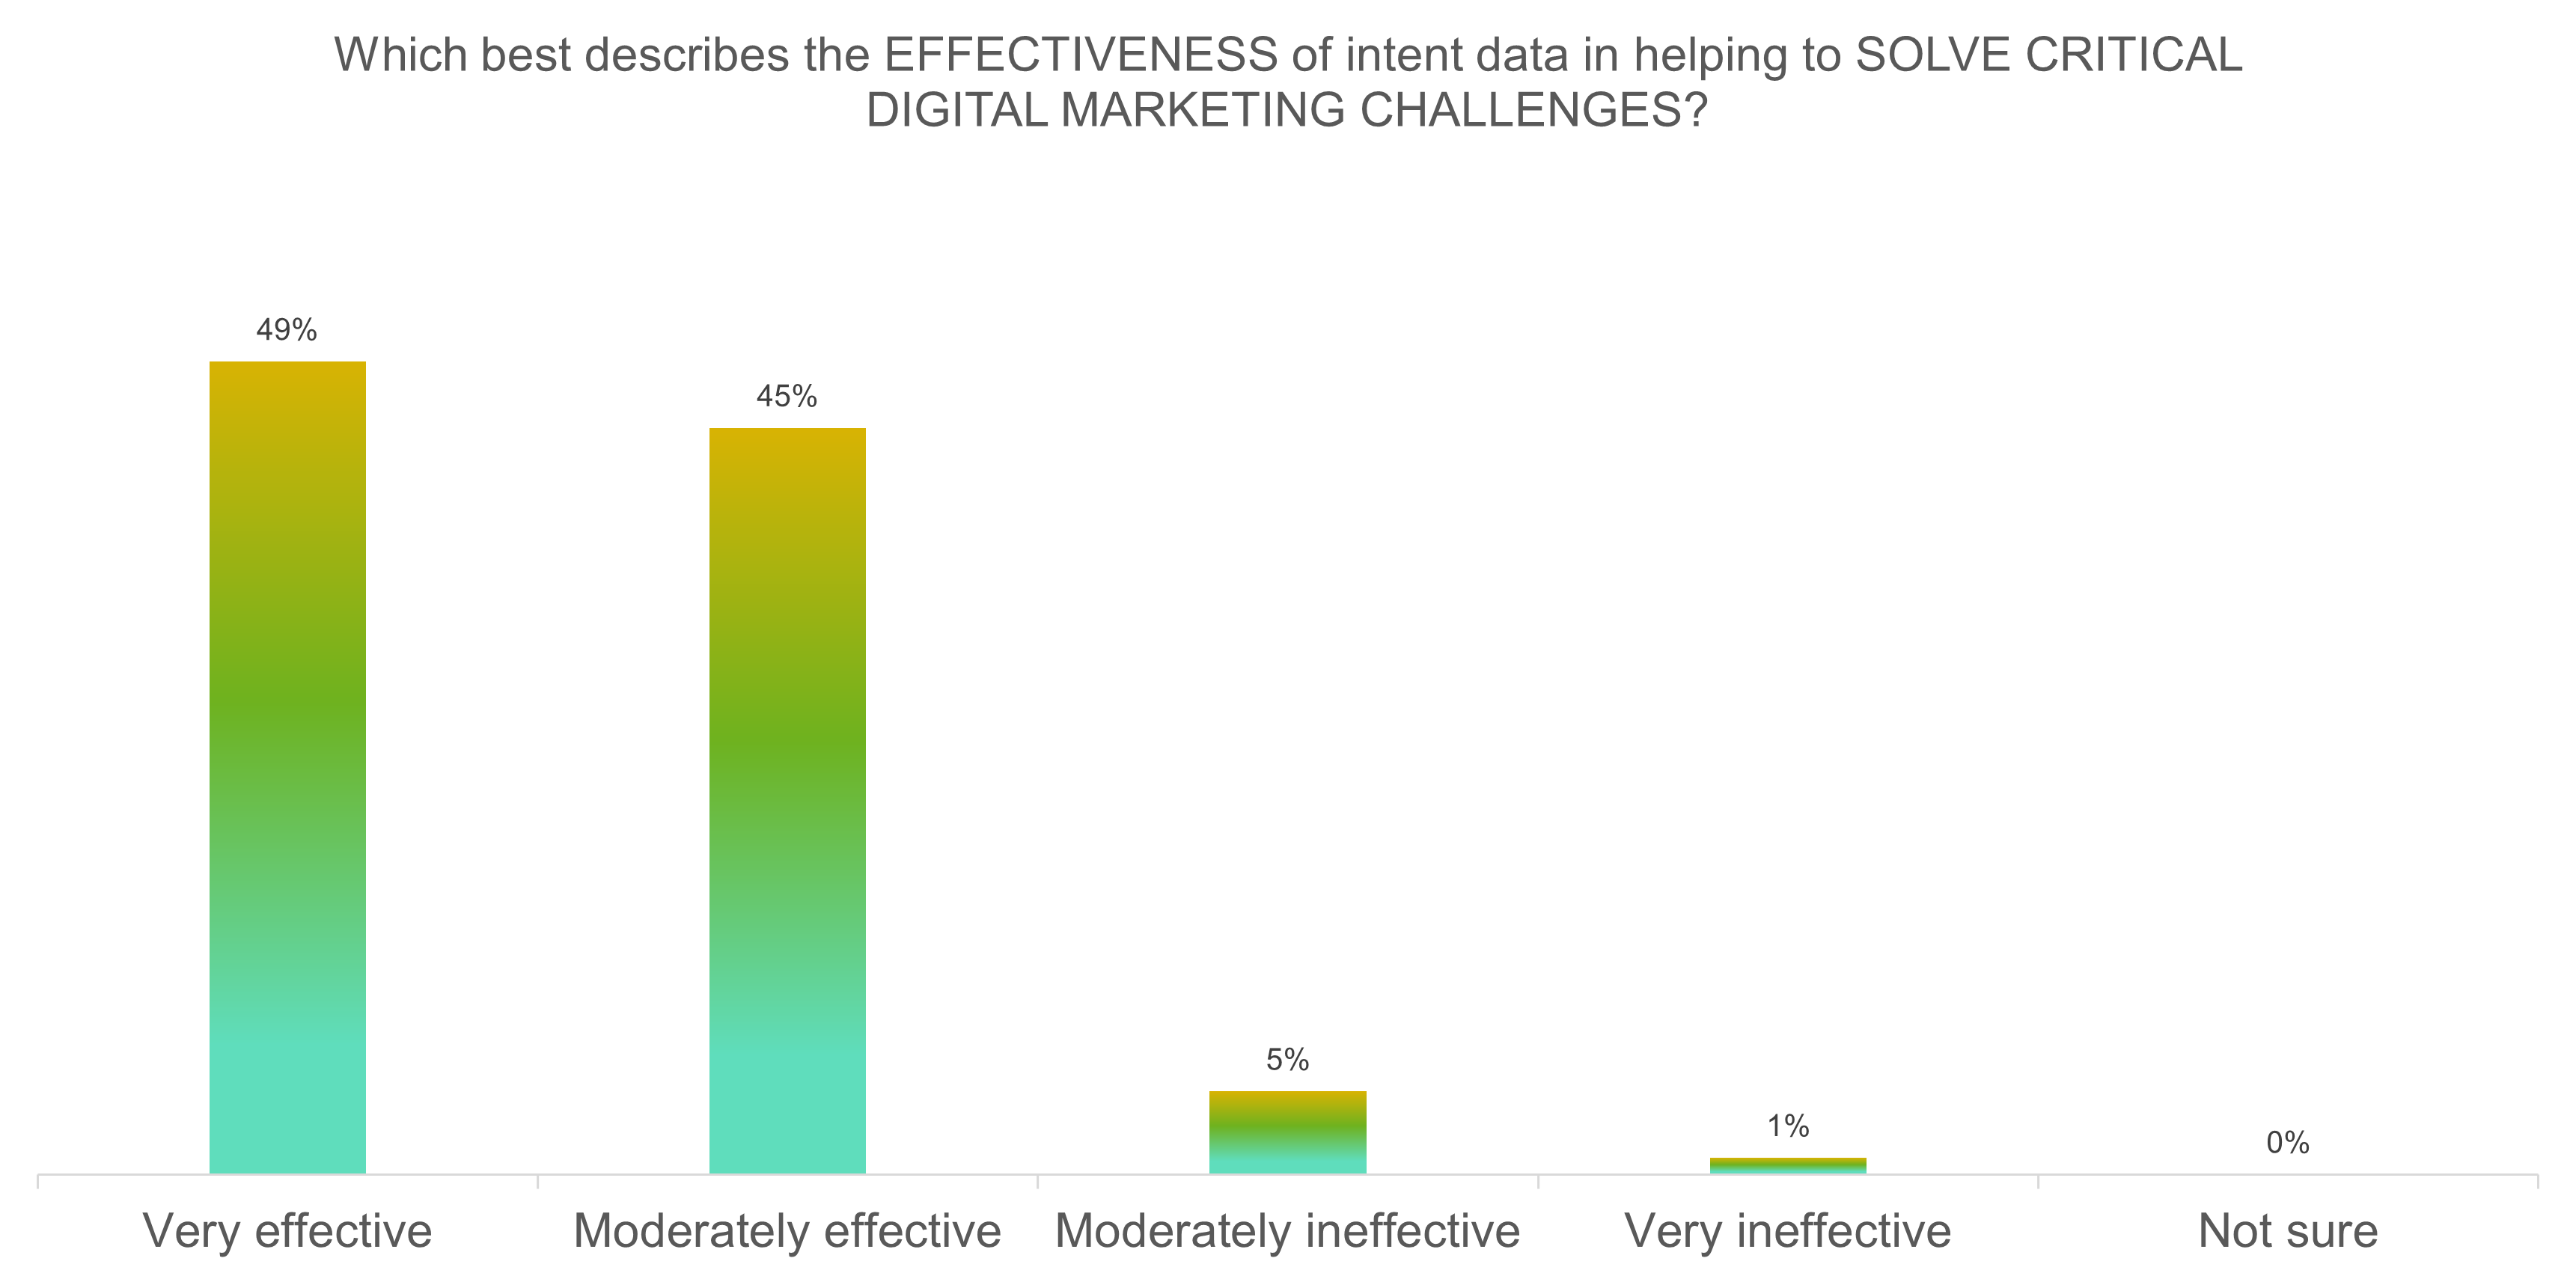 Intent data effectiveness for challenges